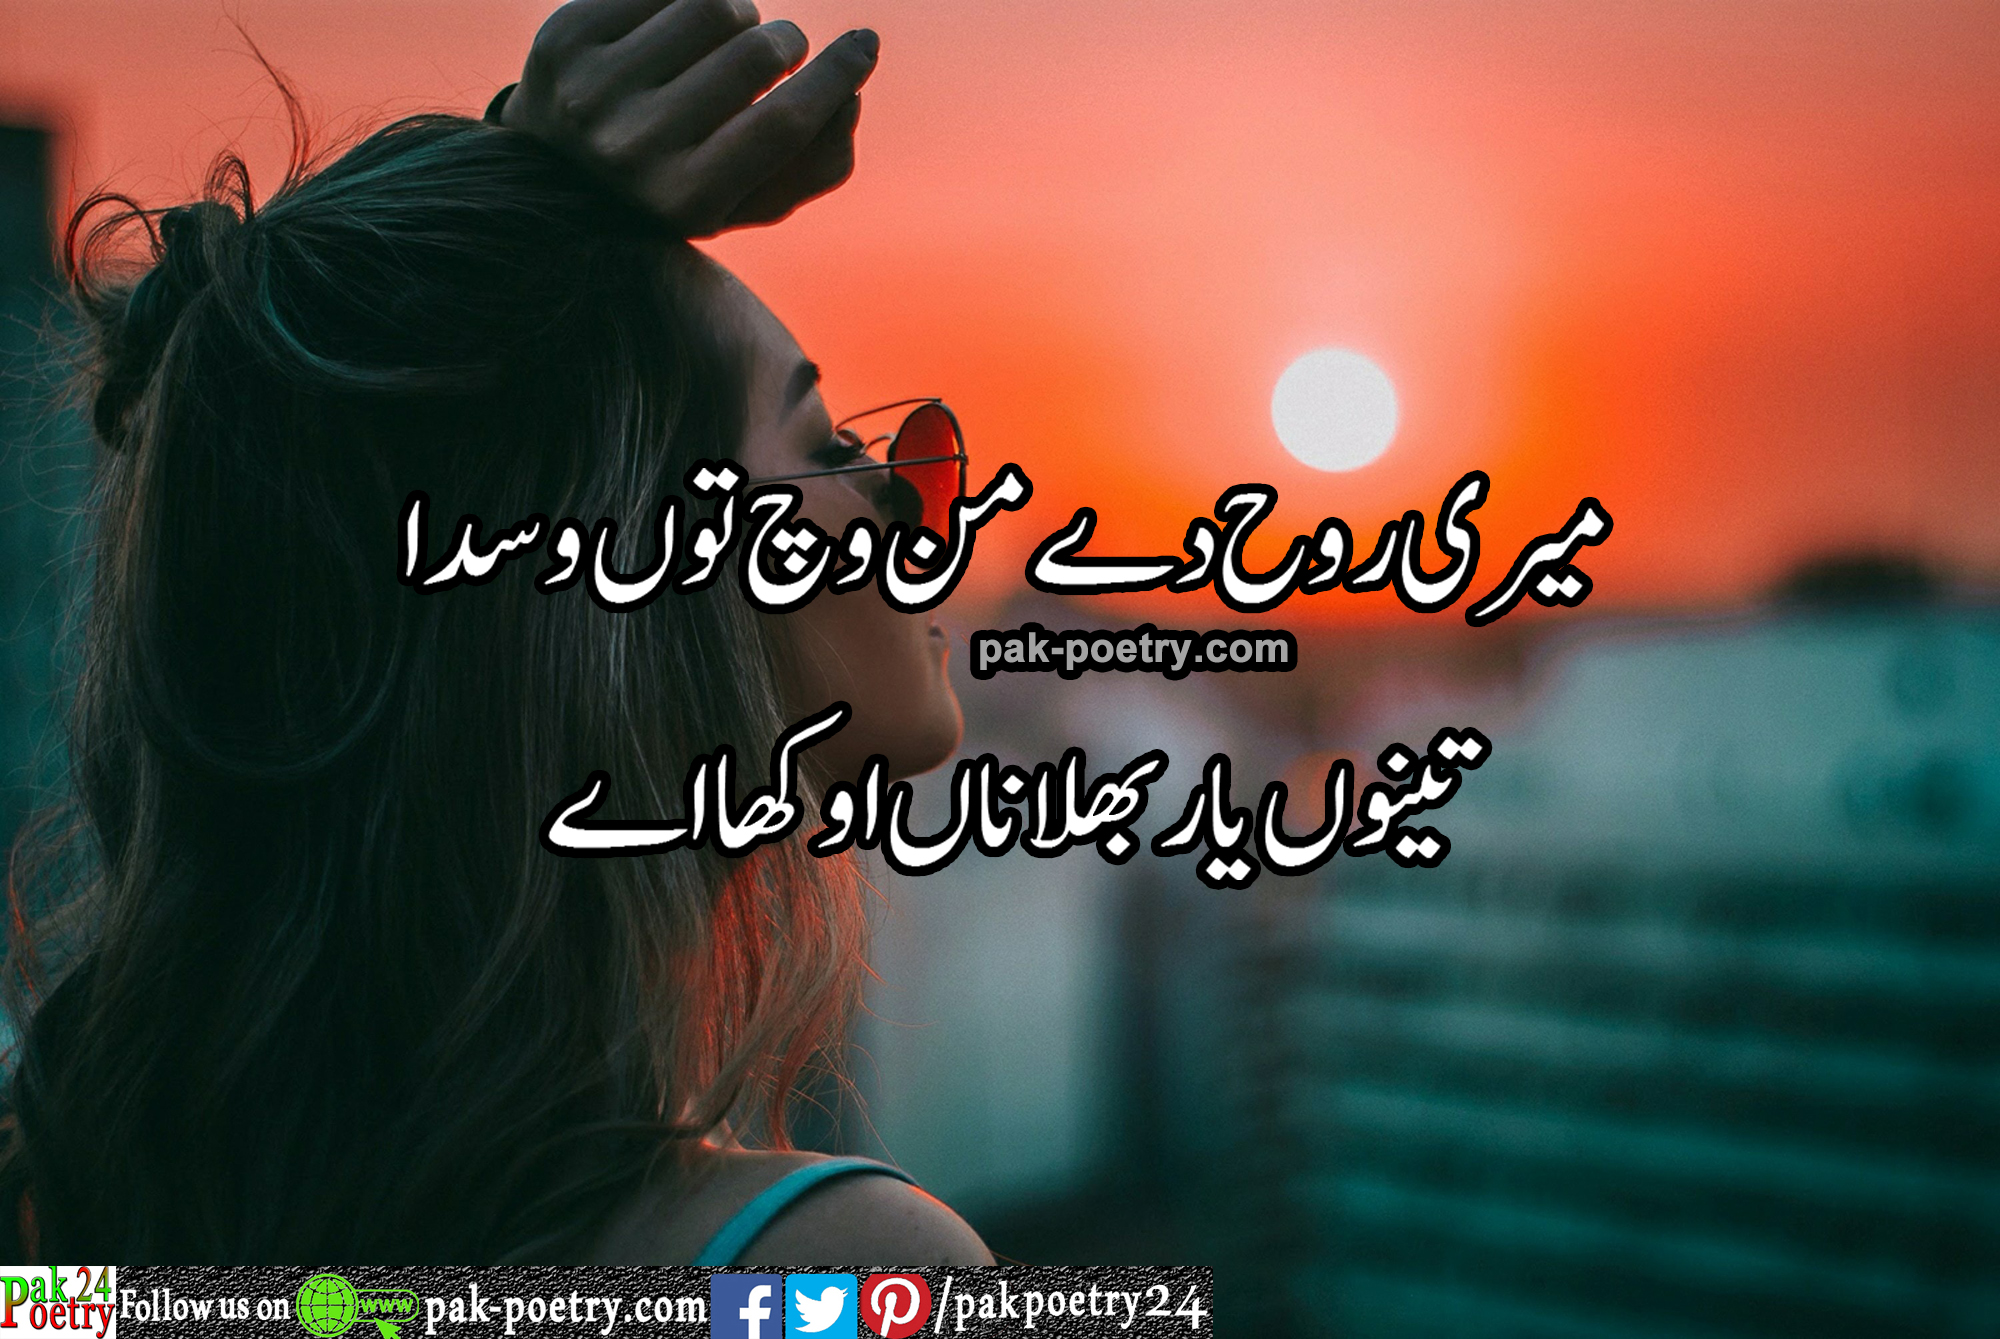 Love poetry, love poetry in urdu, love poetry urdu, urdu love poetry, poetry love, love poetry pics, love poetries, lovepoetry, punjabi poetry, poetry punjabi, poetry in punjabi, punjabi poetry pics,